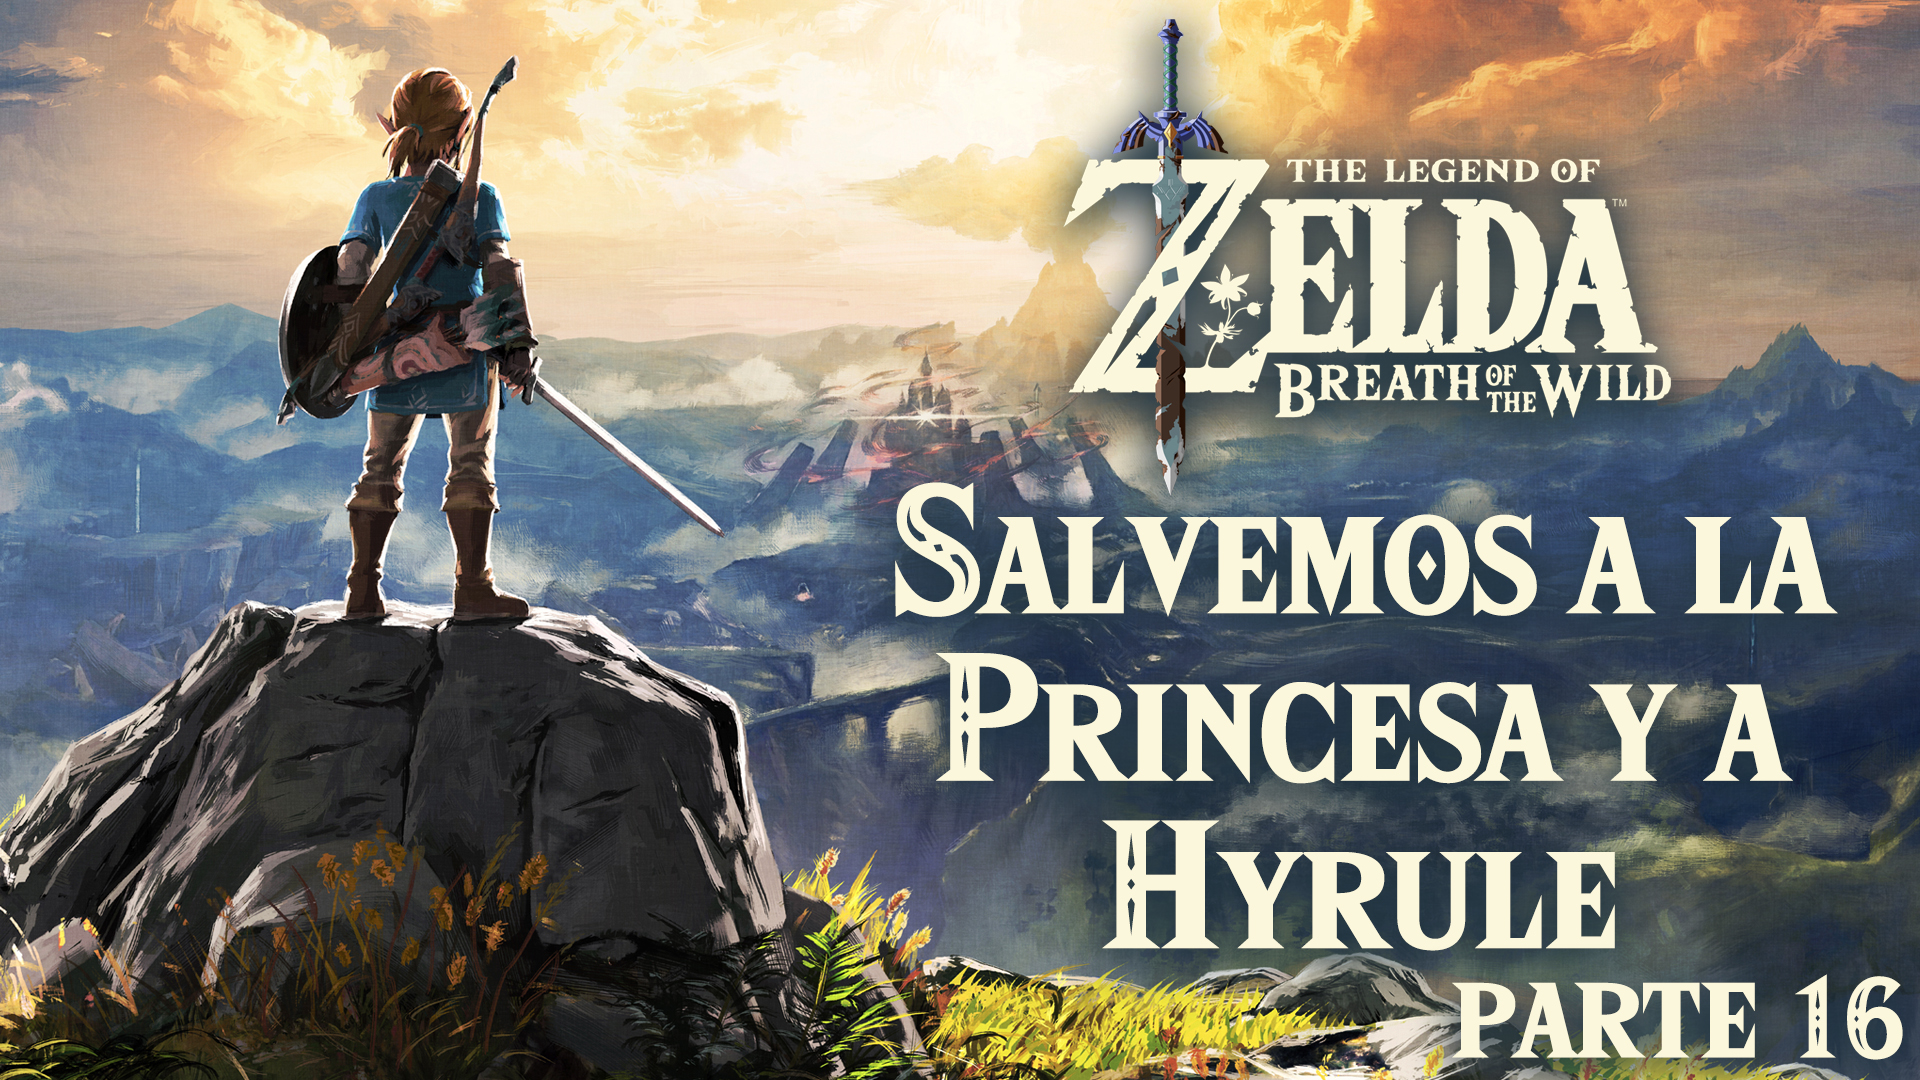 Serie The Legend of Zelda: Breath of the Wild #16 – Salvemos a la princesa y a Hyrule